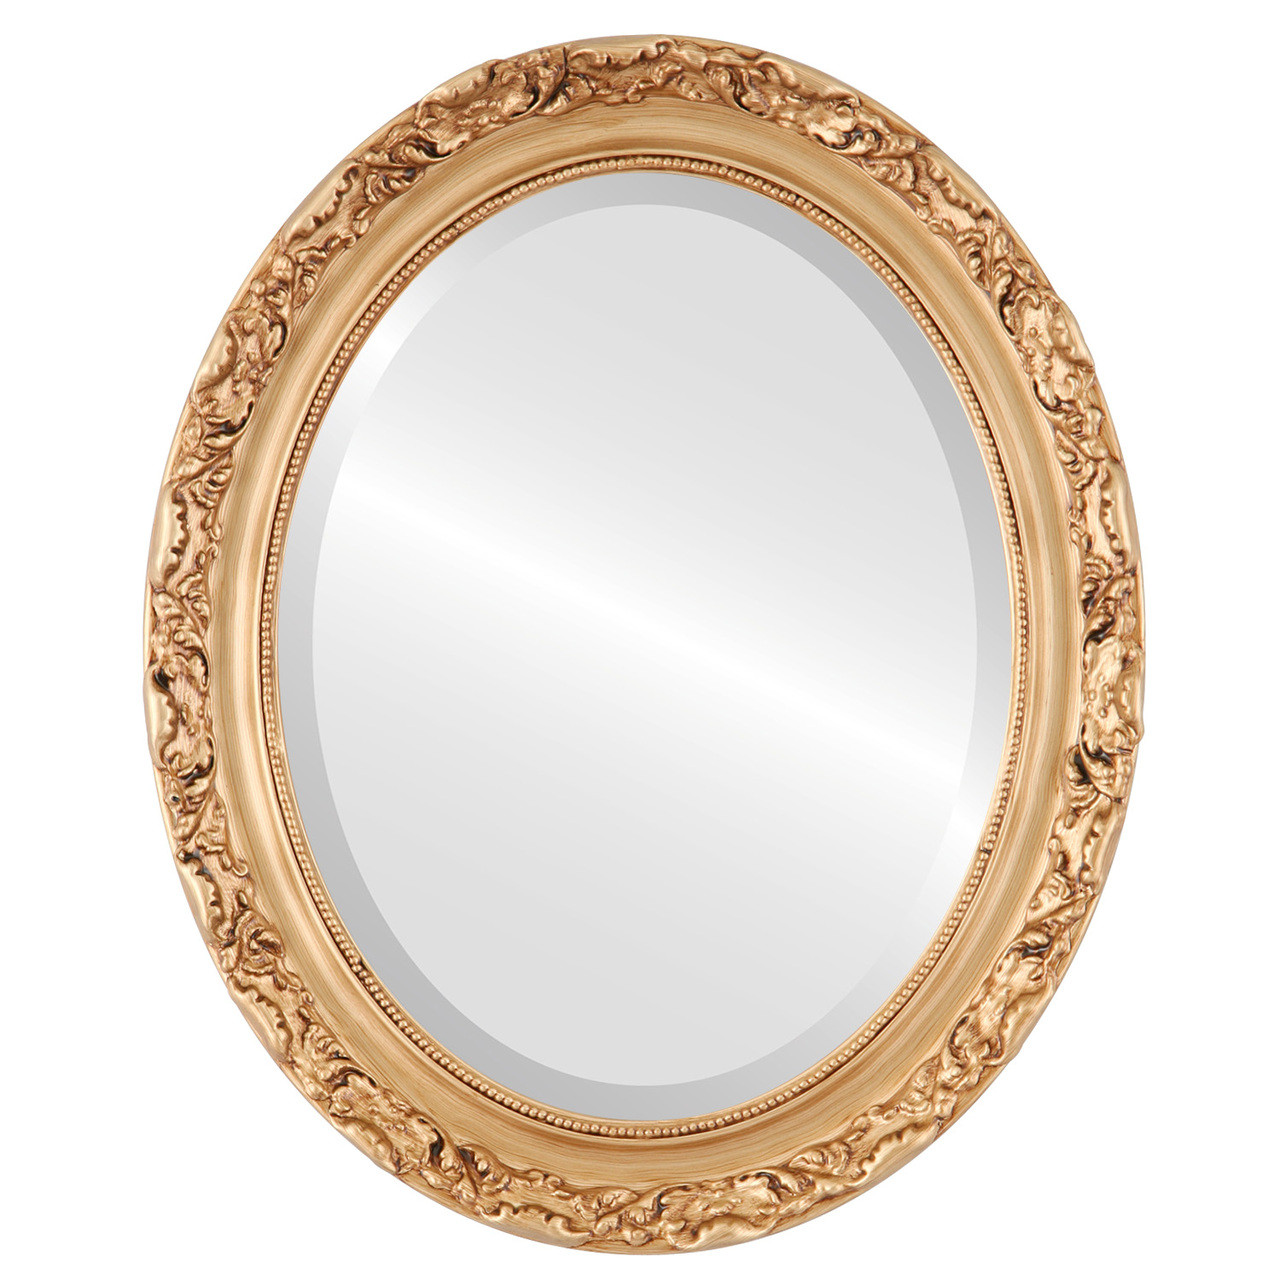 Vintage Gold Oval Mirrors from $146   Free Shipping